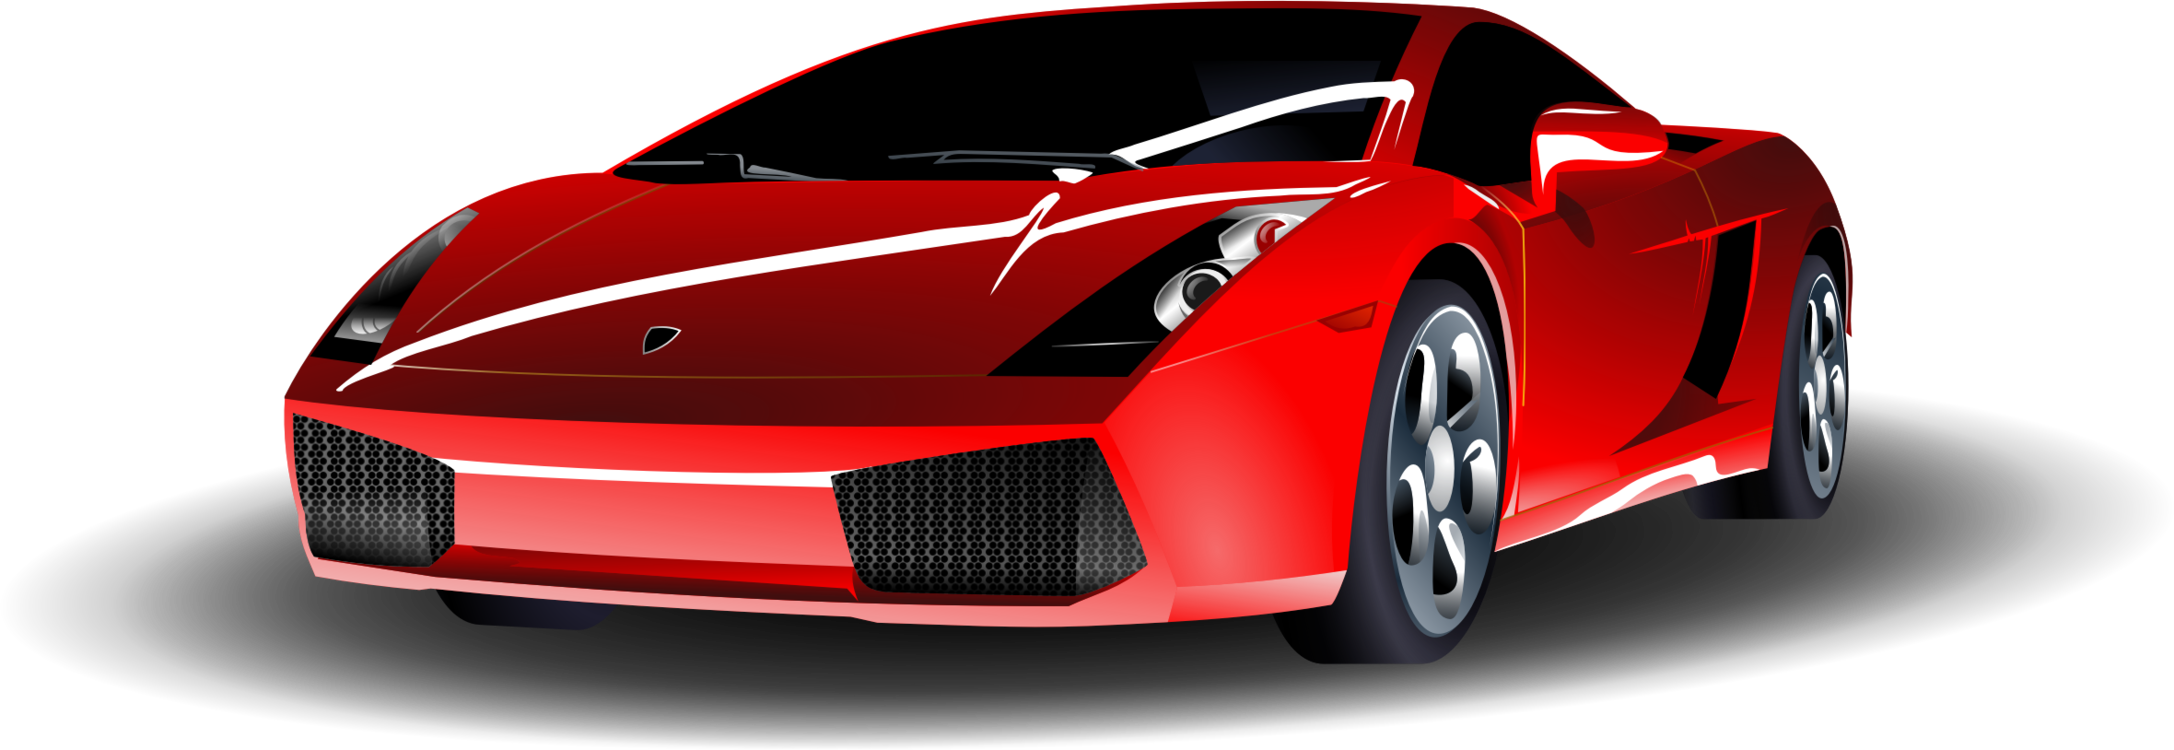 City Car,Lamborghini,Automotive Exterior